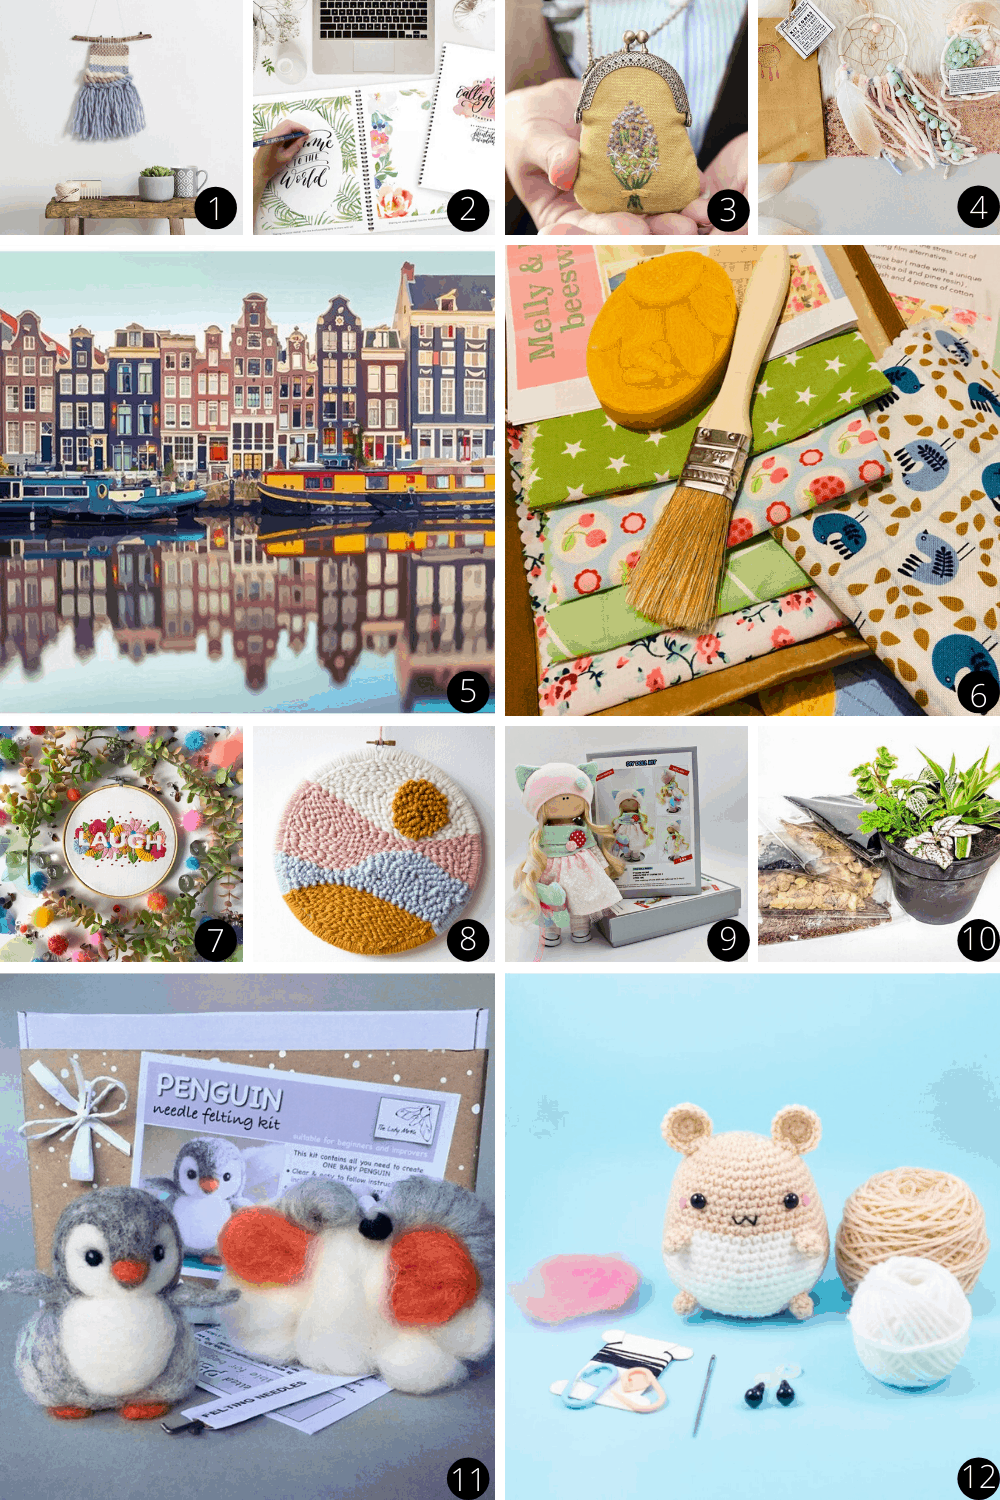 Whether you're trying to find a new hobby or searching for a gift for a friend you can't go wrong with these creative craft boxes